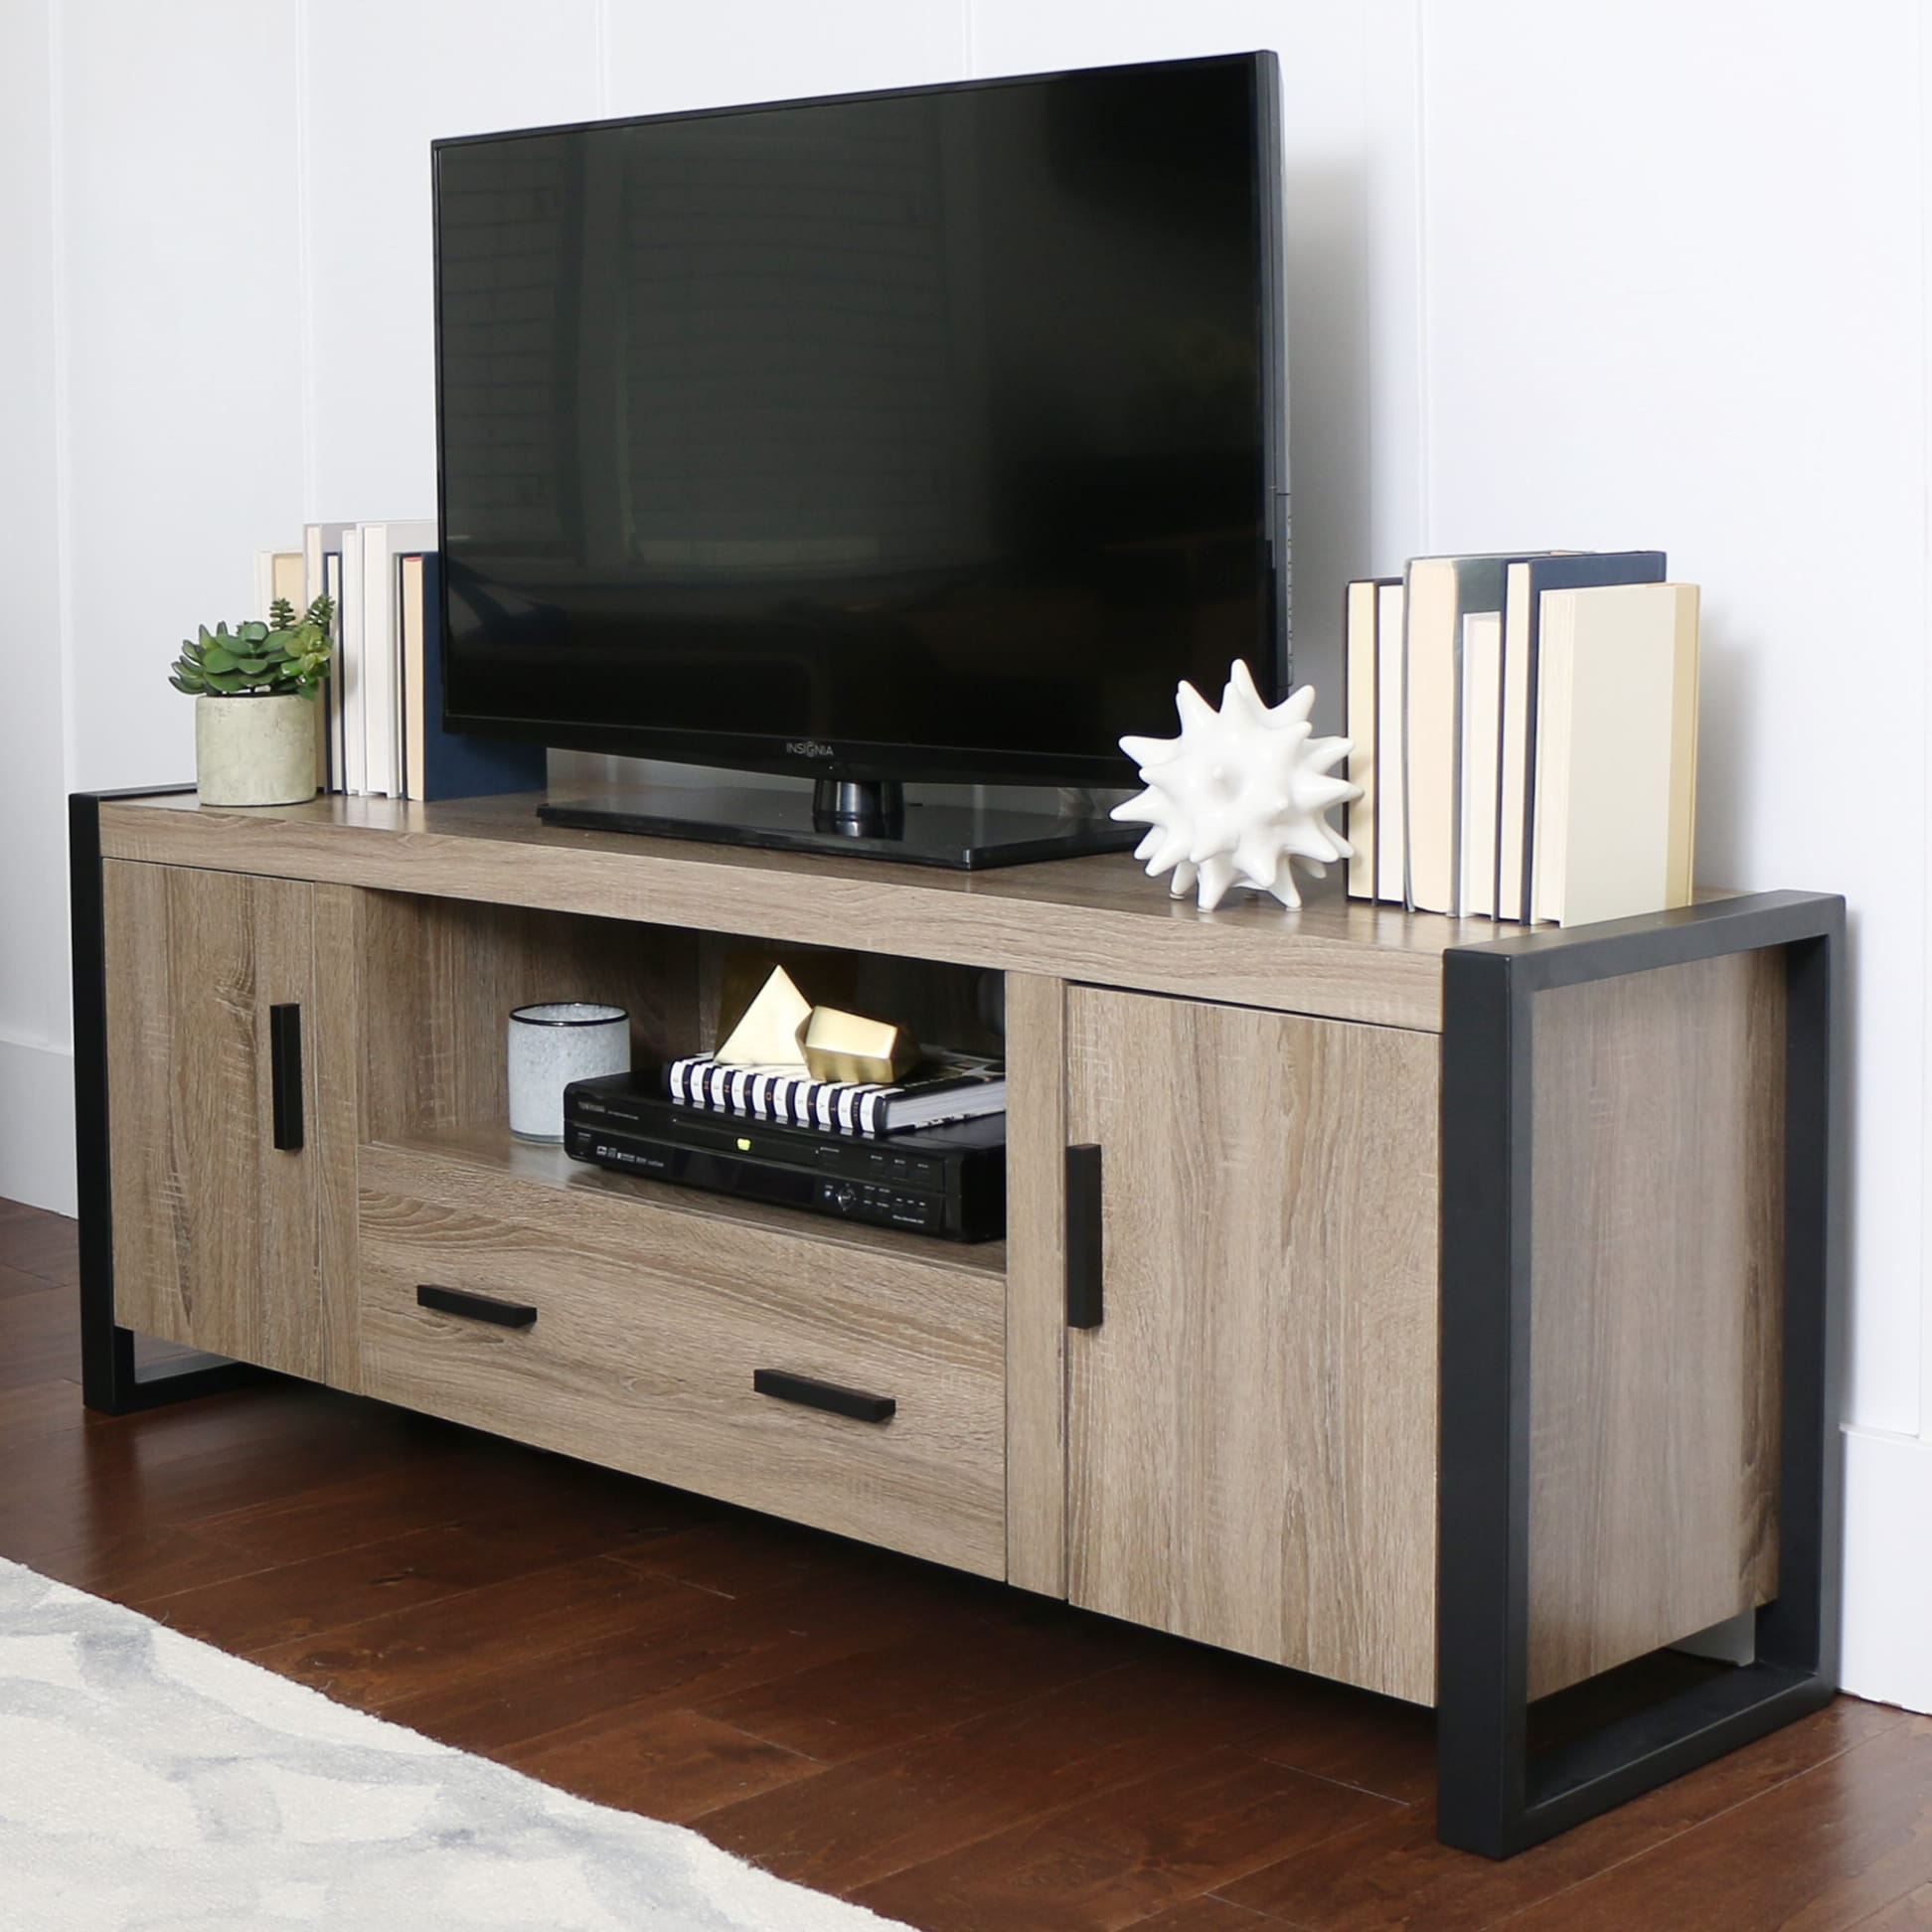 Urban Blend 60 Inch Tv Stand – Ash Grey/blackwalker Edison Intended For Walker Edison Contemporary Tall Tv Stands (View 9 of 20)